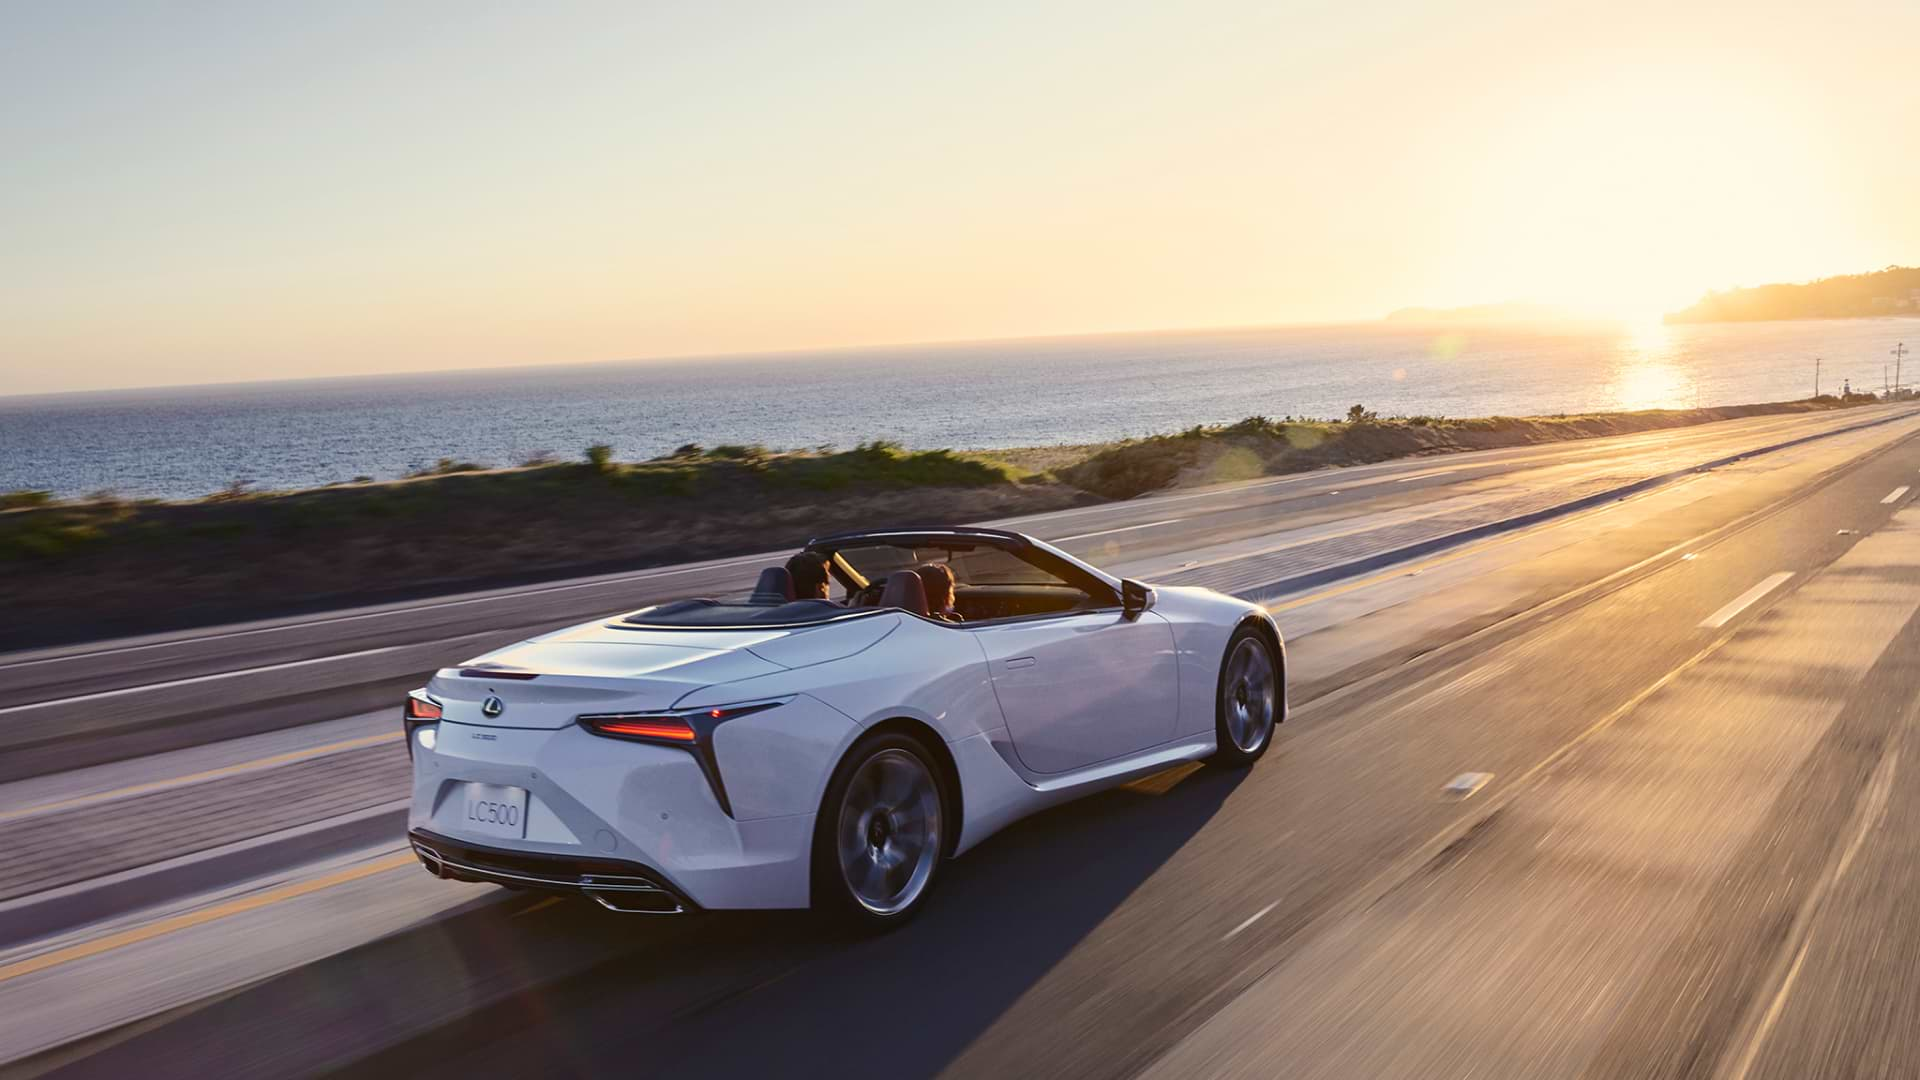 LC 500 Convertible in White Nova